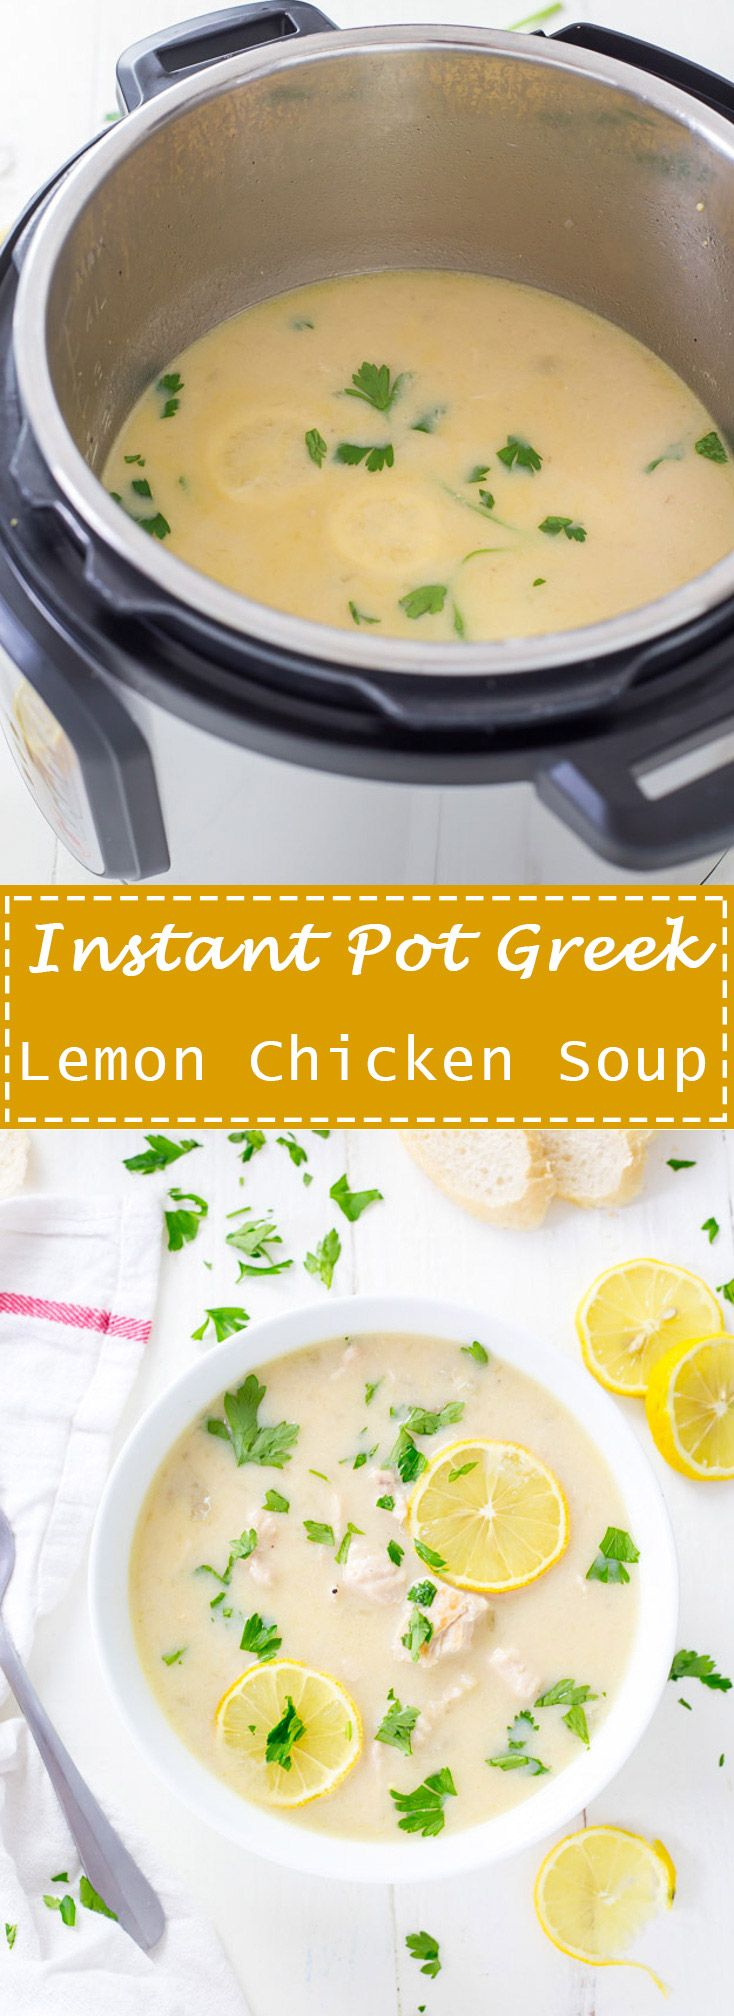 Instant Pot Greek Lemon Chicken Soup is a low carb, keto greek soup that combines simple ingredients that results in a refreshing meal or a great starter! Perfect for Sunday supper with the family. #ad